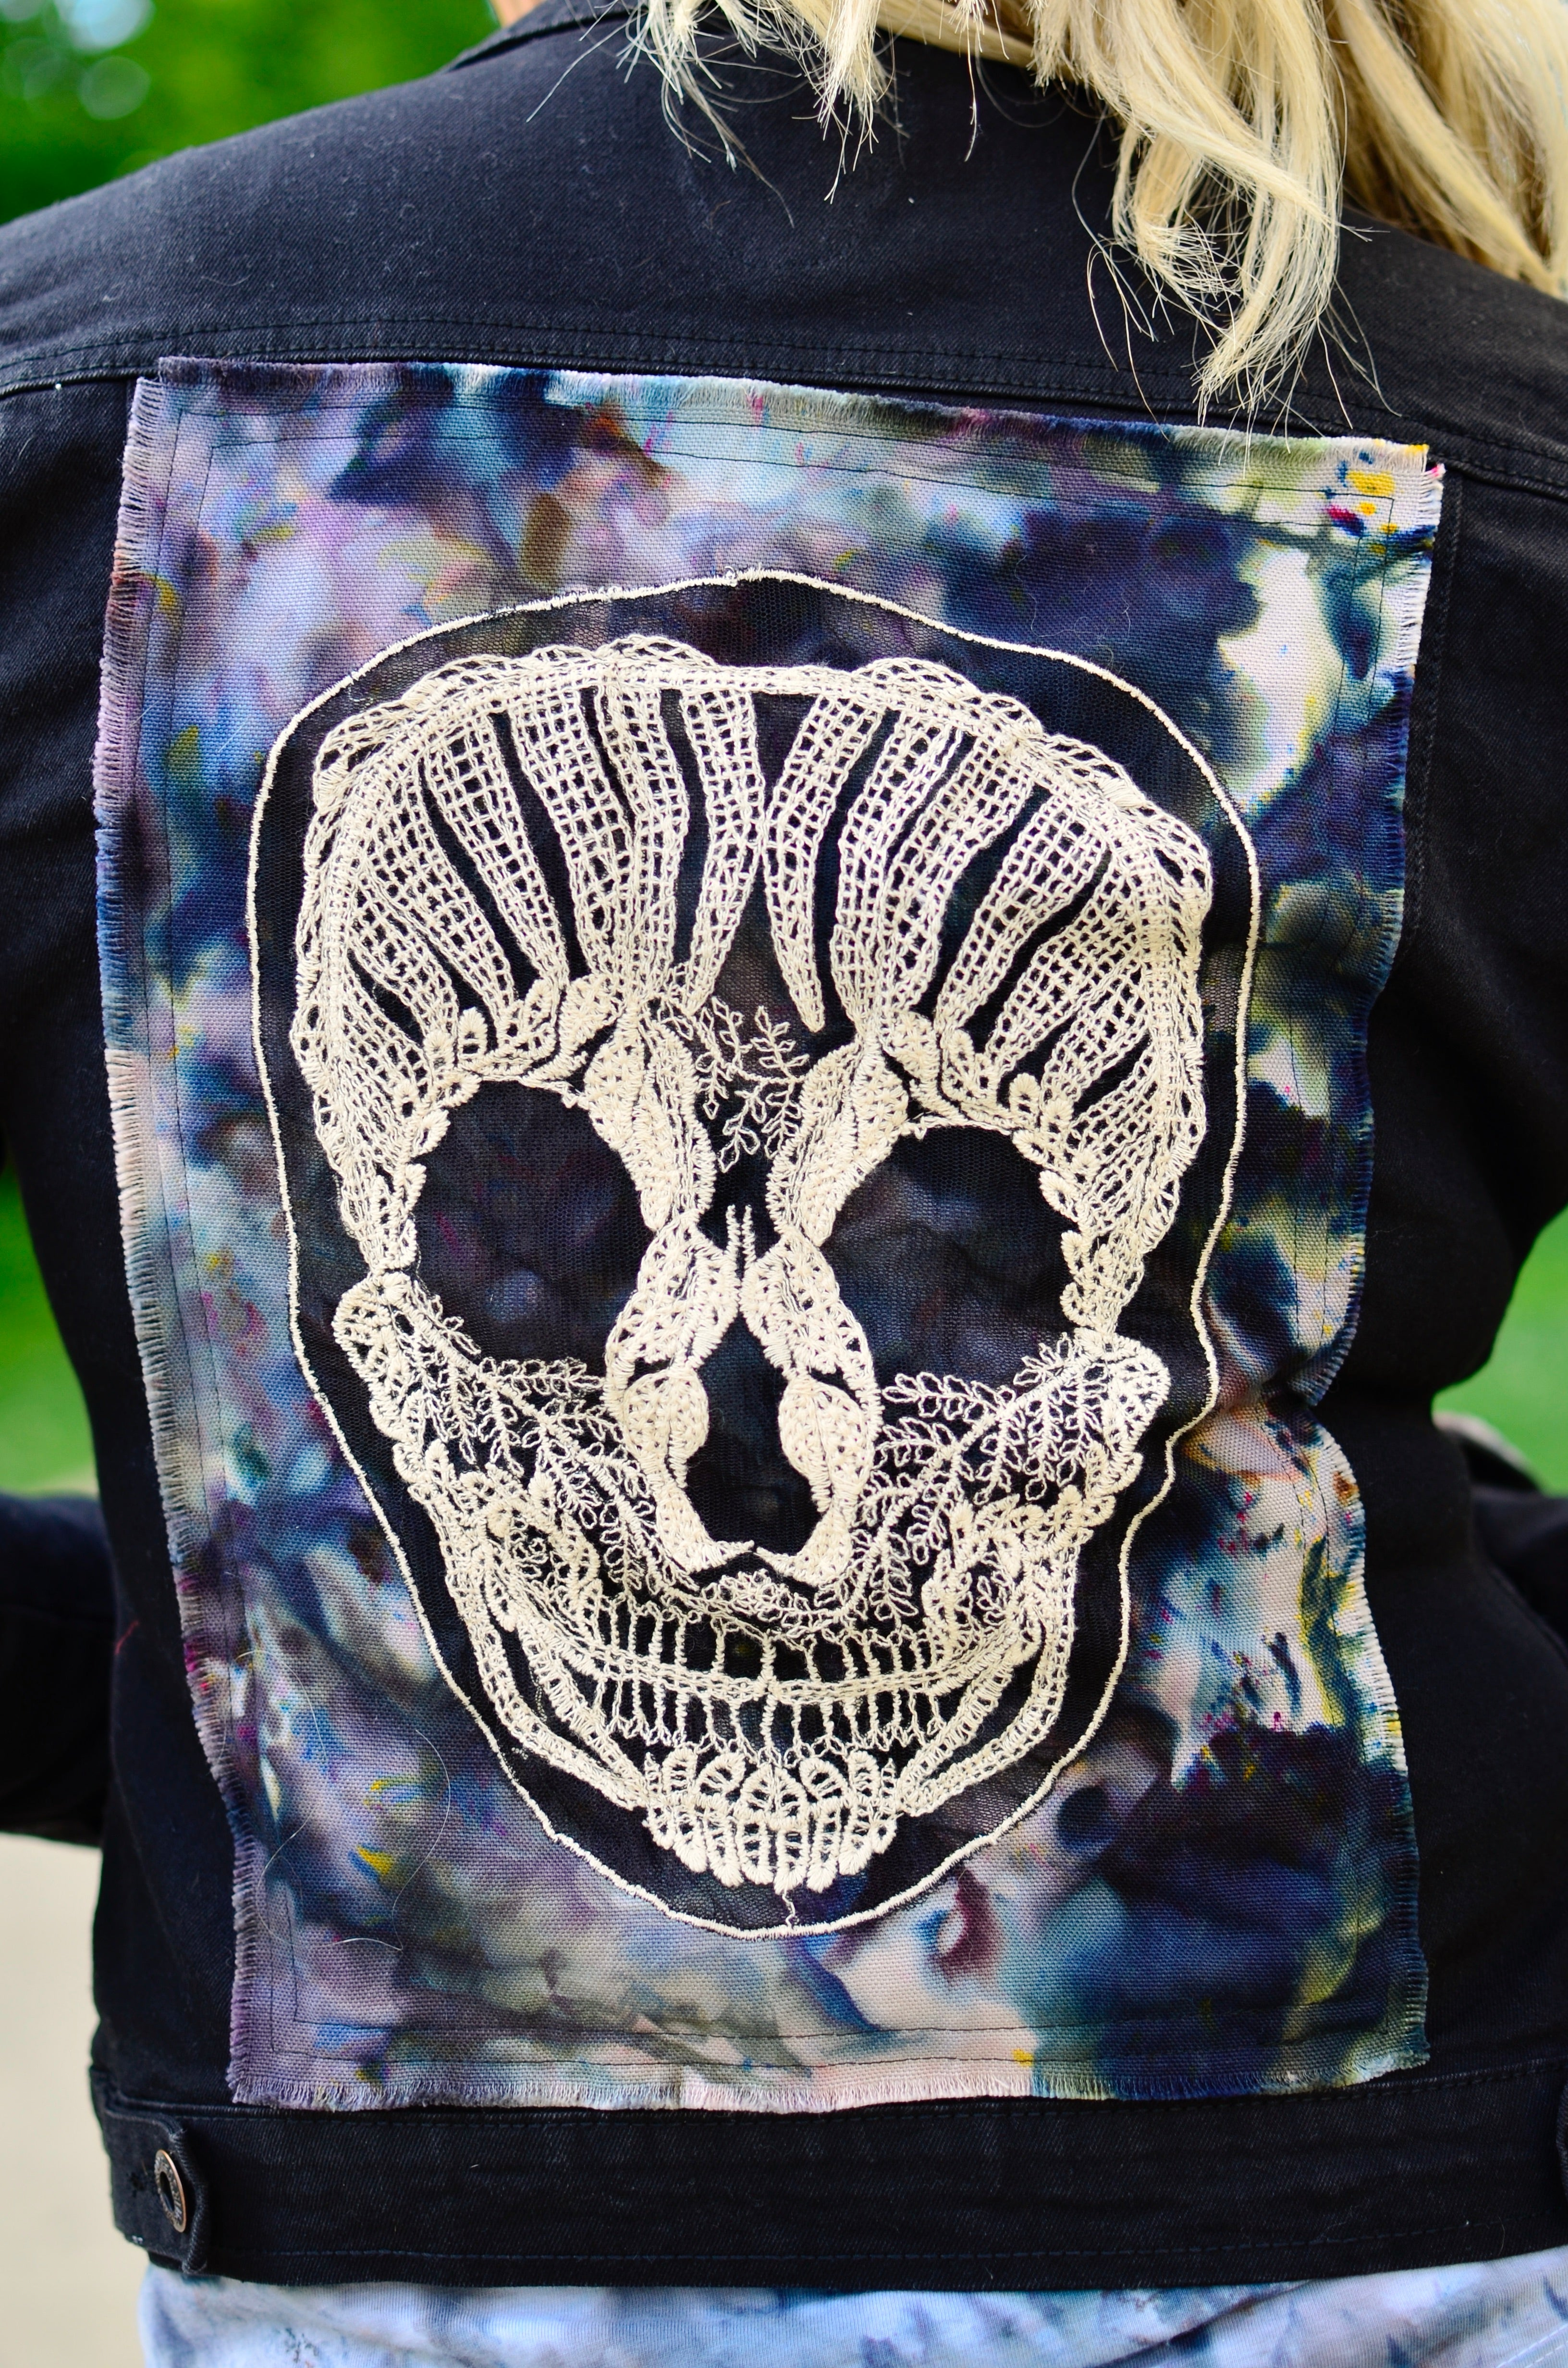 Small Hand-Dyed Denim Jacket with Skulls -